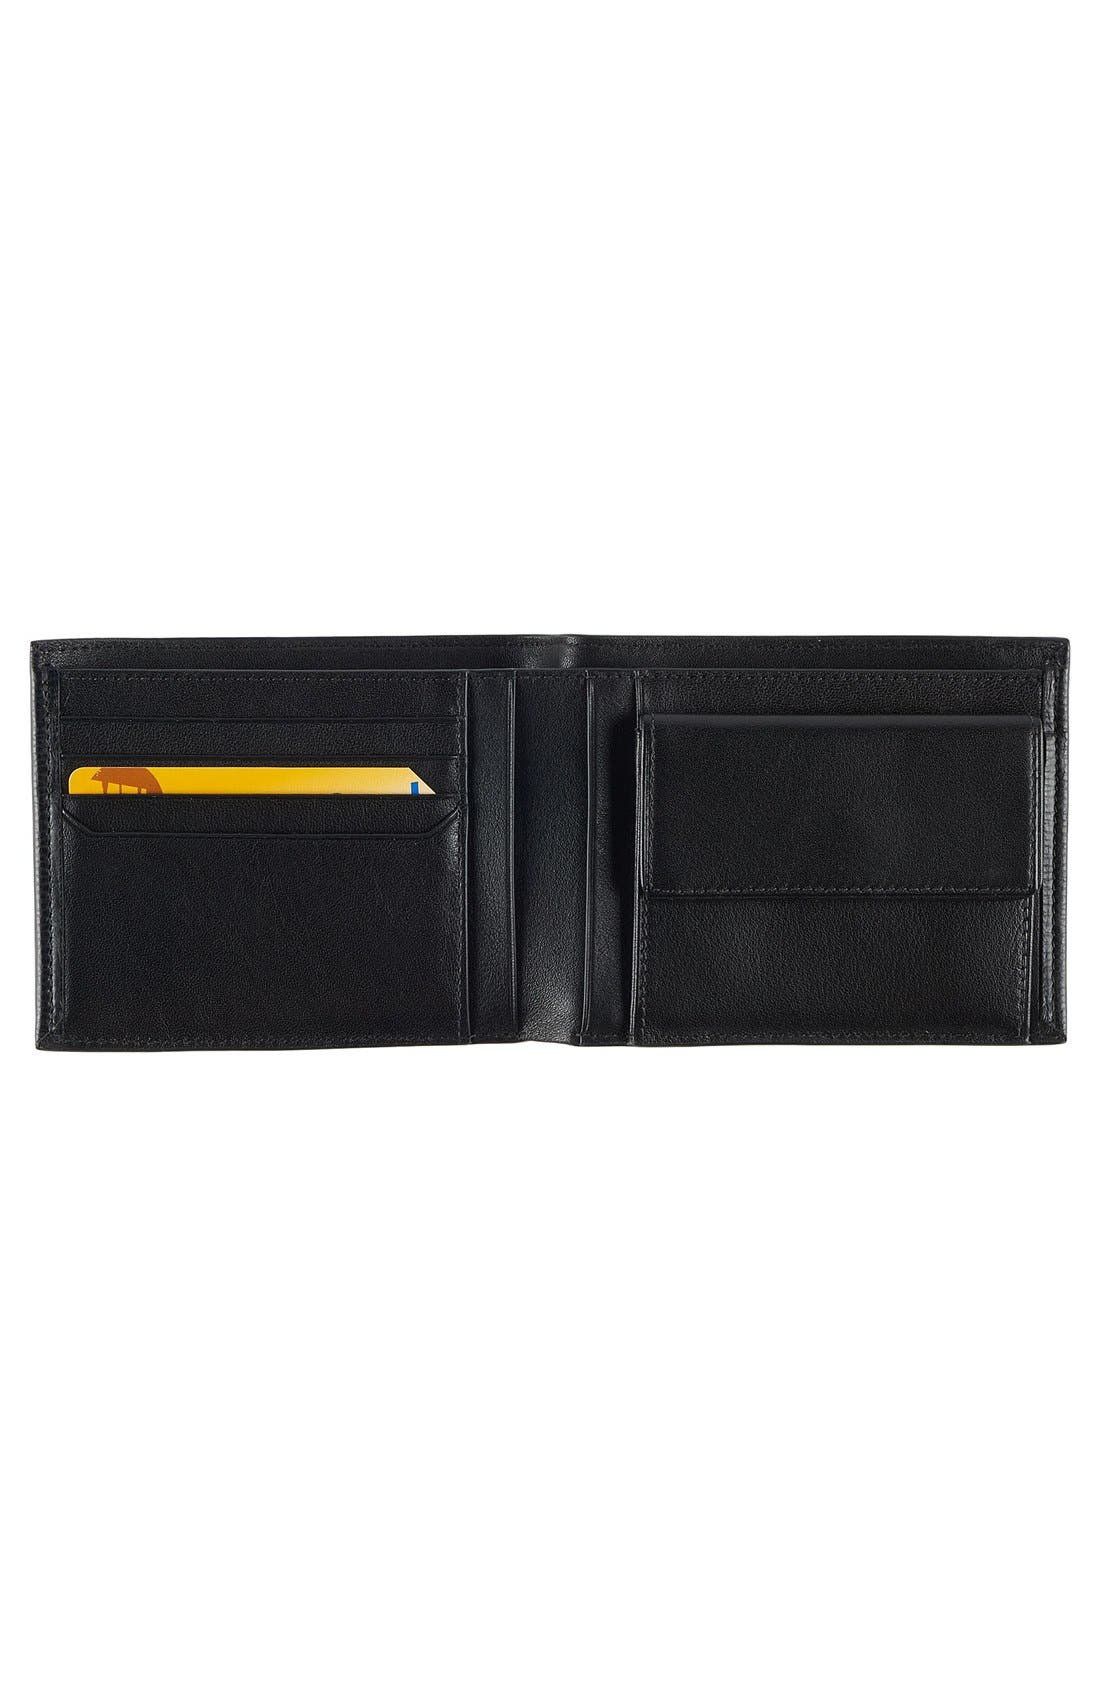 Monaco Global Leather Wallet with Coin Pocket,                             Alternate thumbnail 2, color,                             BLACK